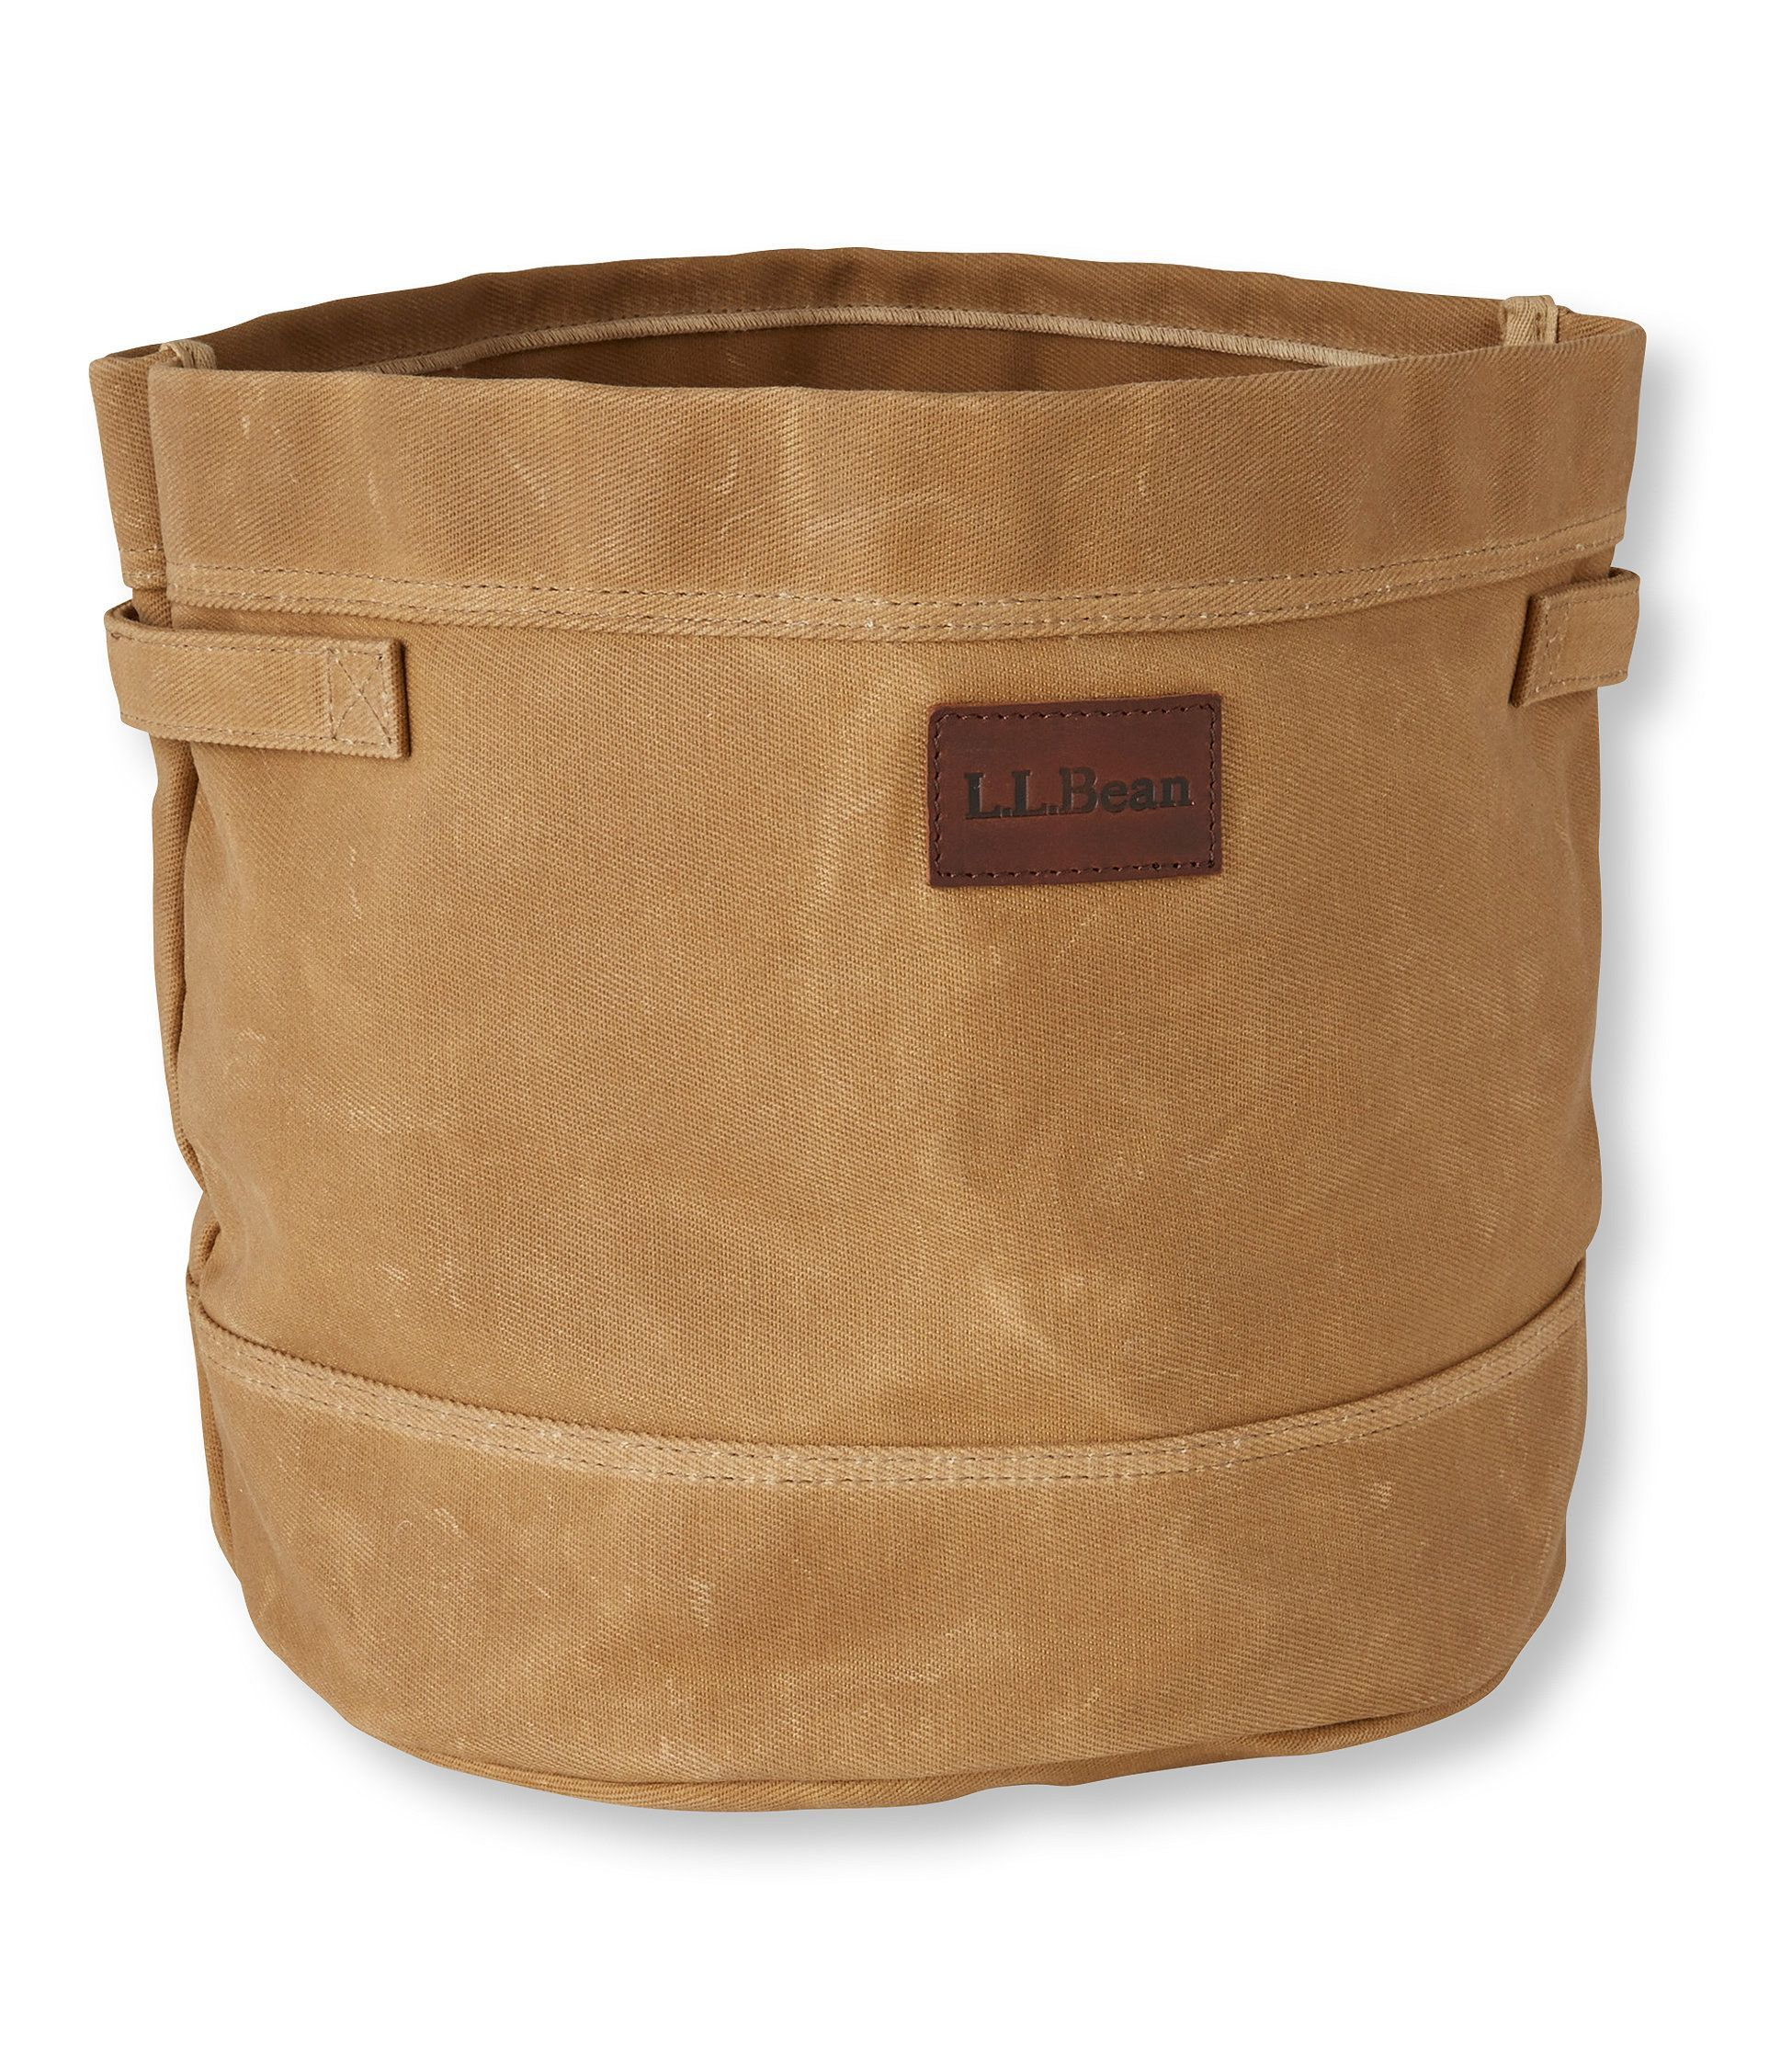 High Quality Waxed Canvas Storage Tote Bag